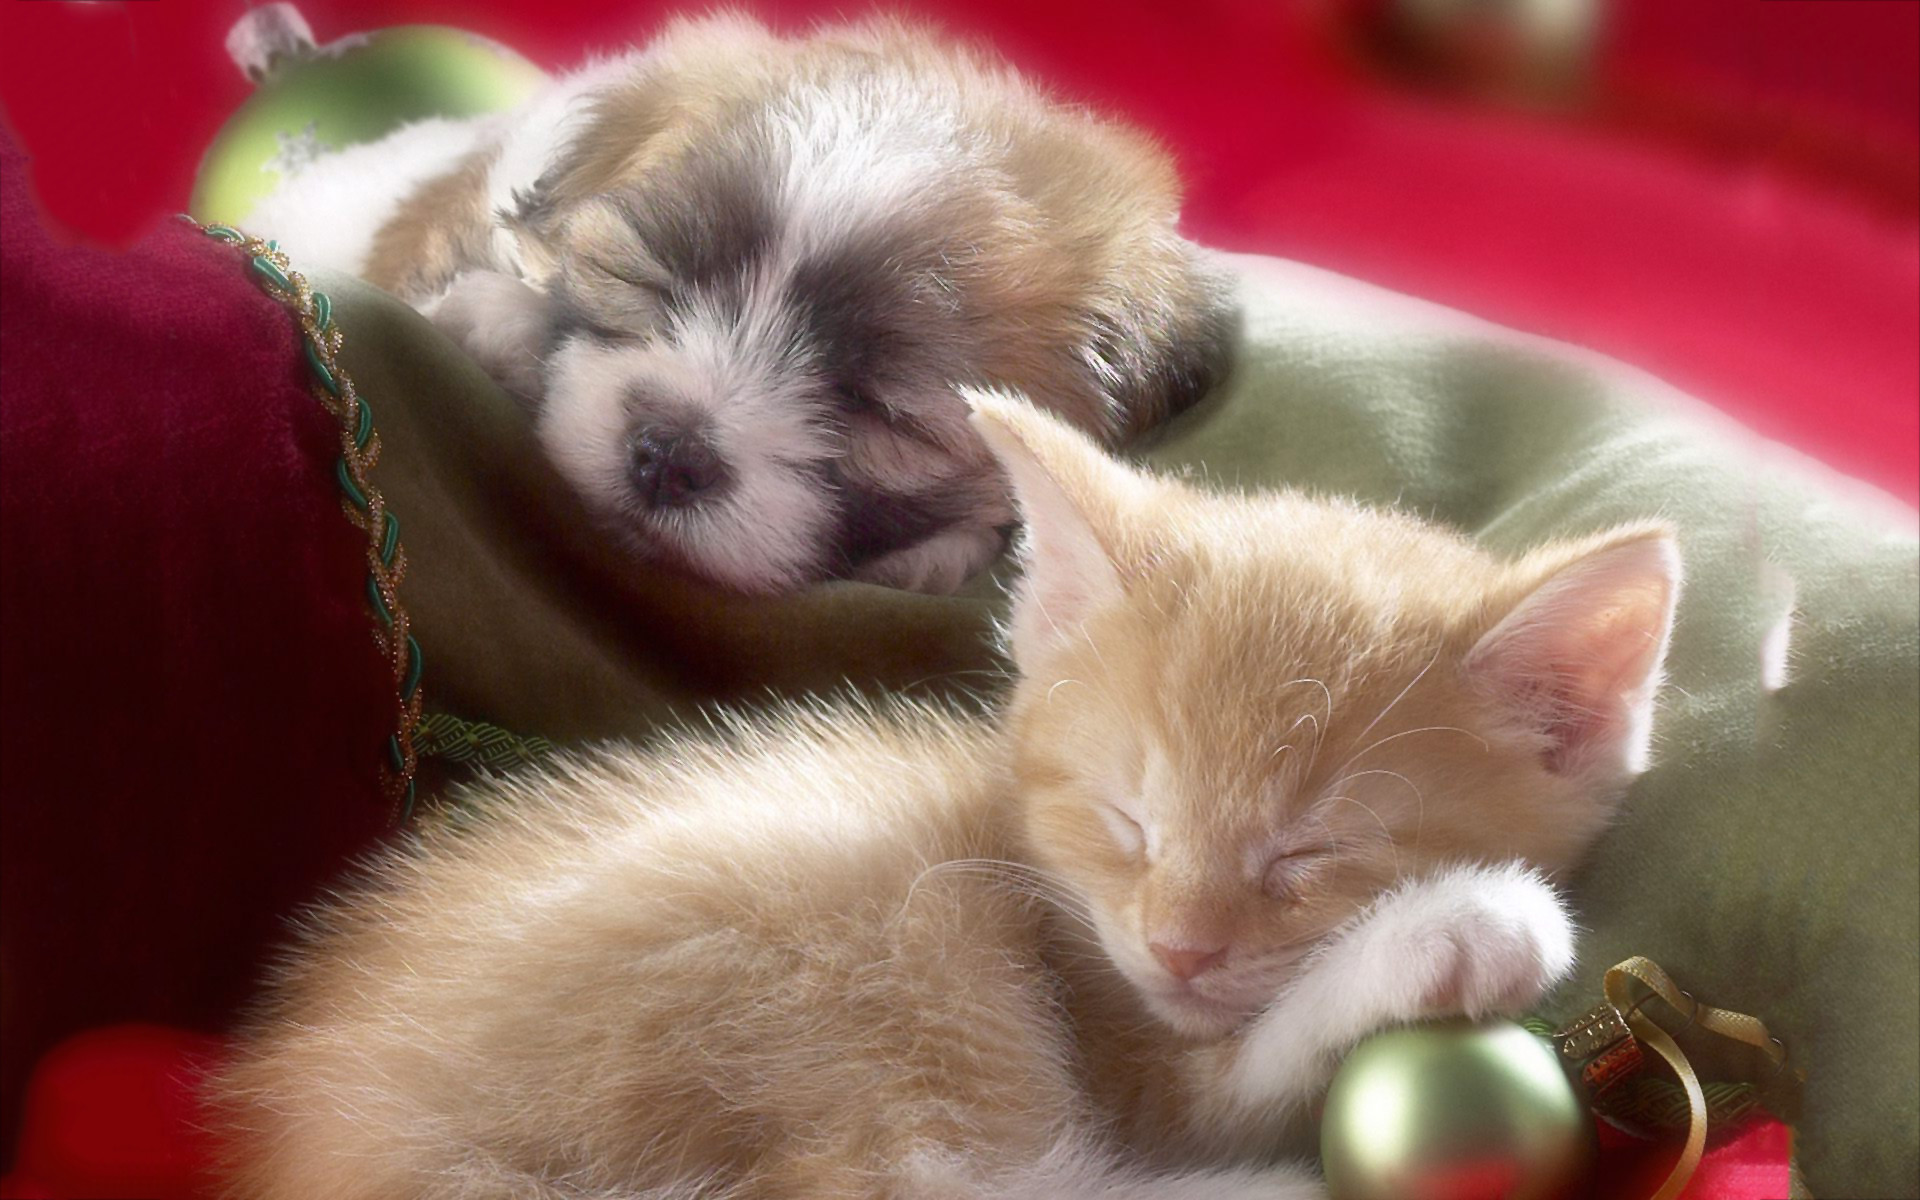 1974x1134 Astonishing Puppies And Kittens Wallpaper Pets Image Of Cute Puppy Kissing Pics Trends Styles